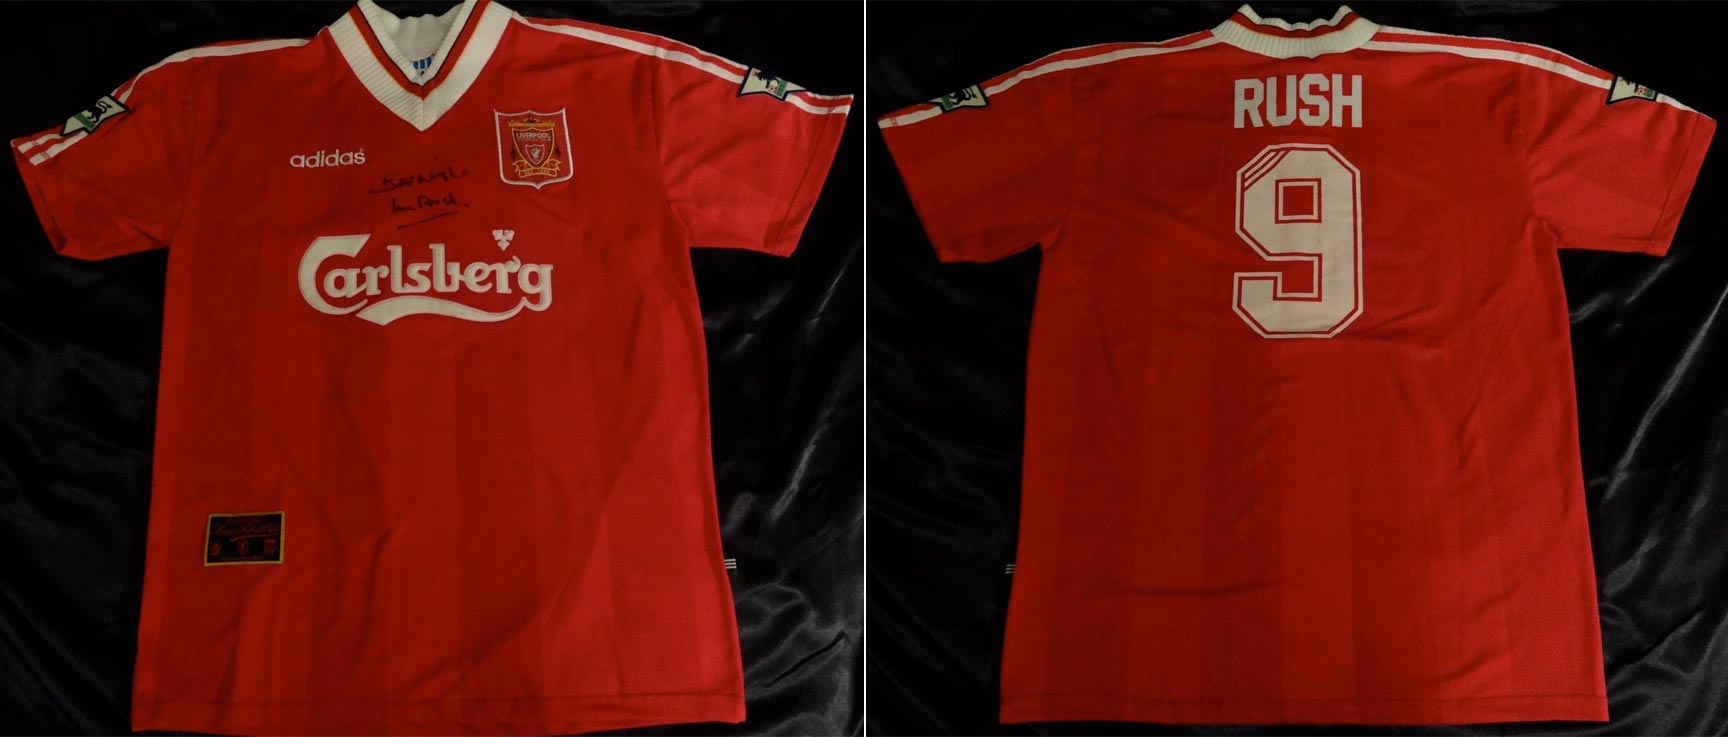 072ea861ff2 1995-96 Premier League Home player shirt long sleeve № 9 Ian Rush (big  Carlsberg logo) - image with site Anfield Relics  www.facebook.com anfield.relics